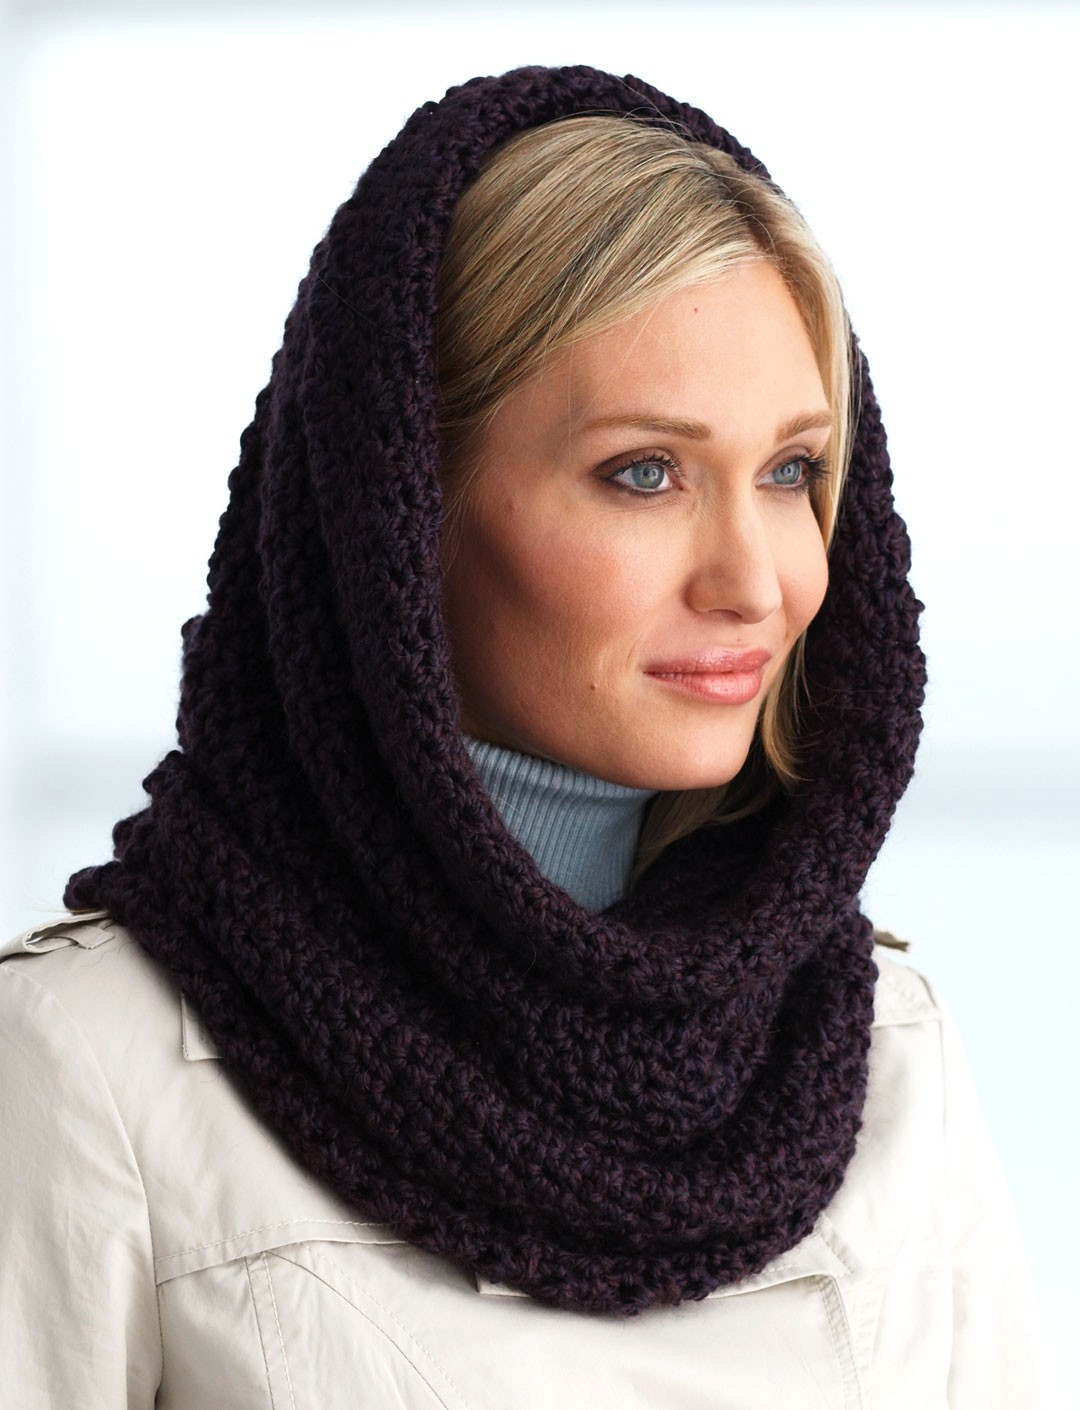 Free Knitting Patterns For Cowl Neck Scarves : Bernat Hooded Cowl (Pattern) Yarnspirations